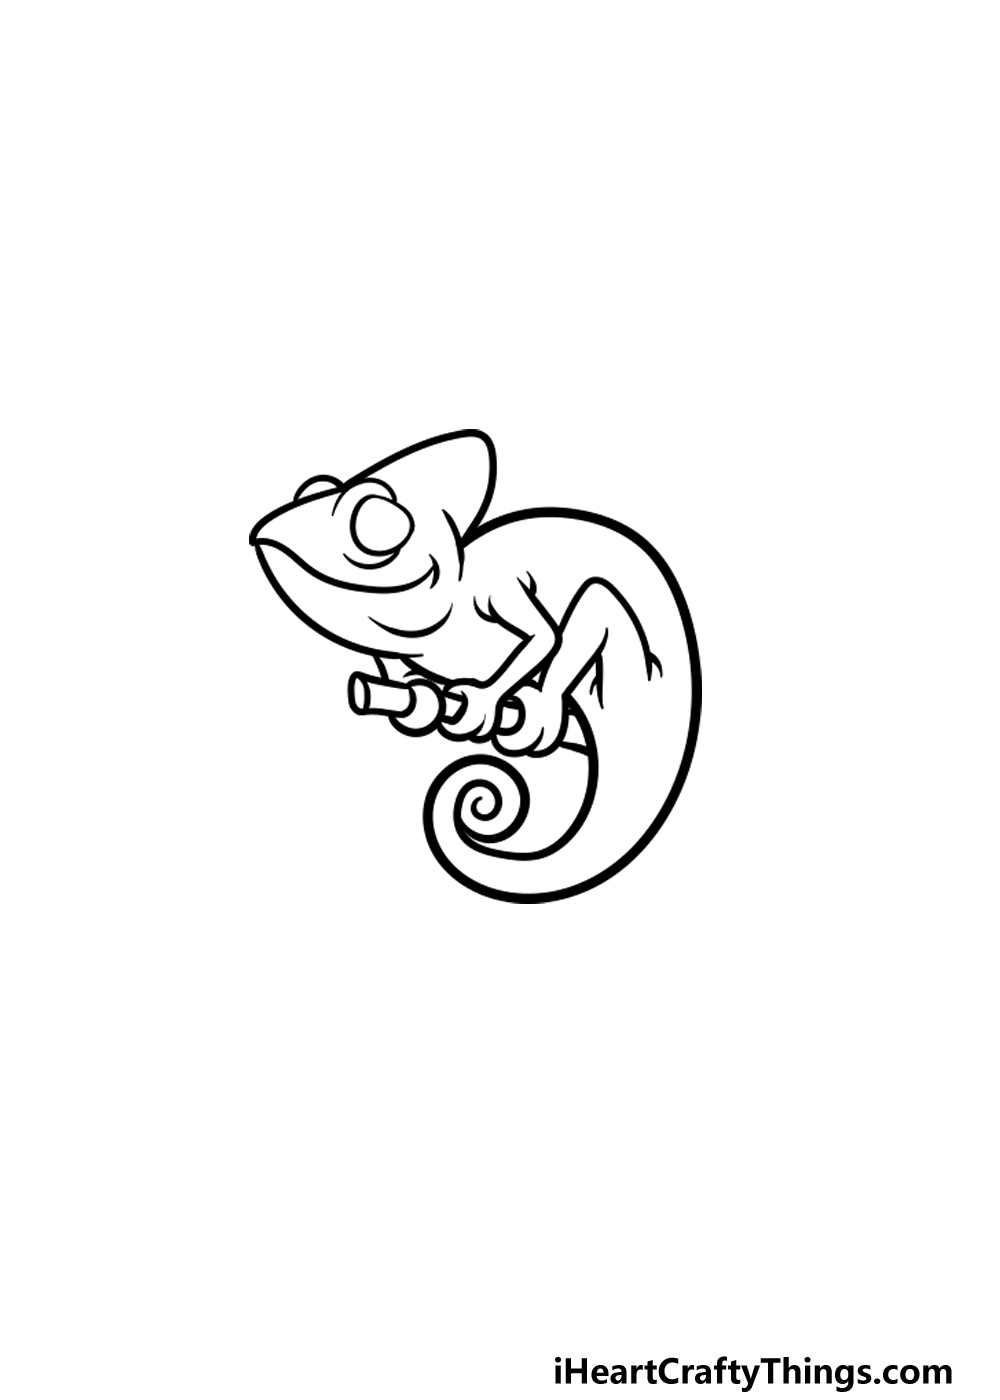 drawing a chameleon step 4